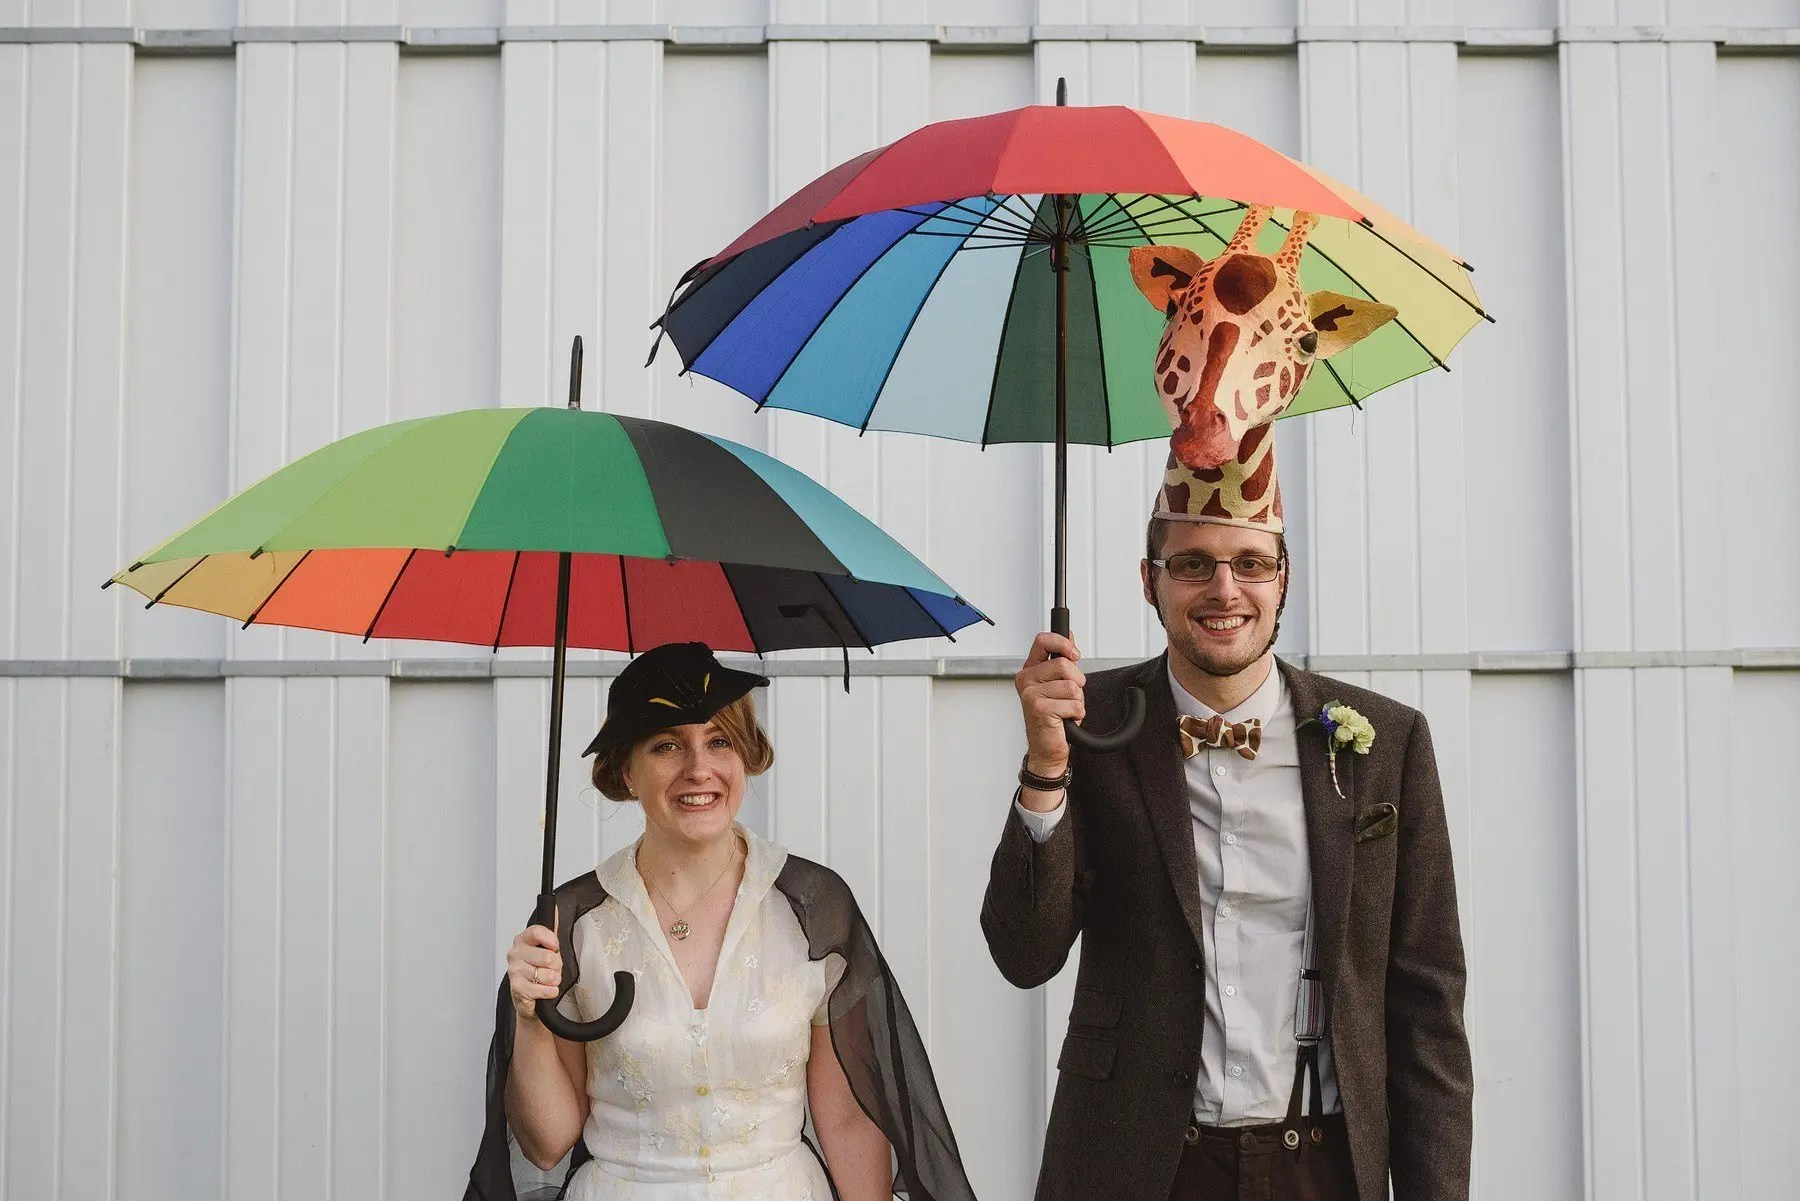 alternative portraits at a wedding using rainbow umbrellas